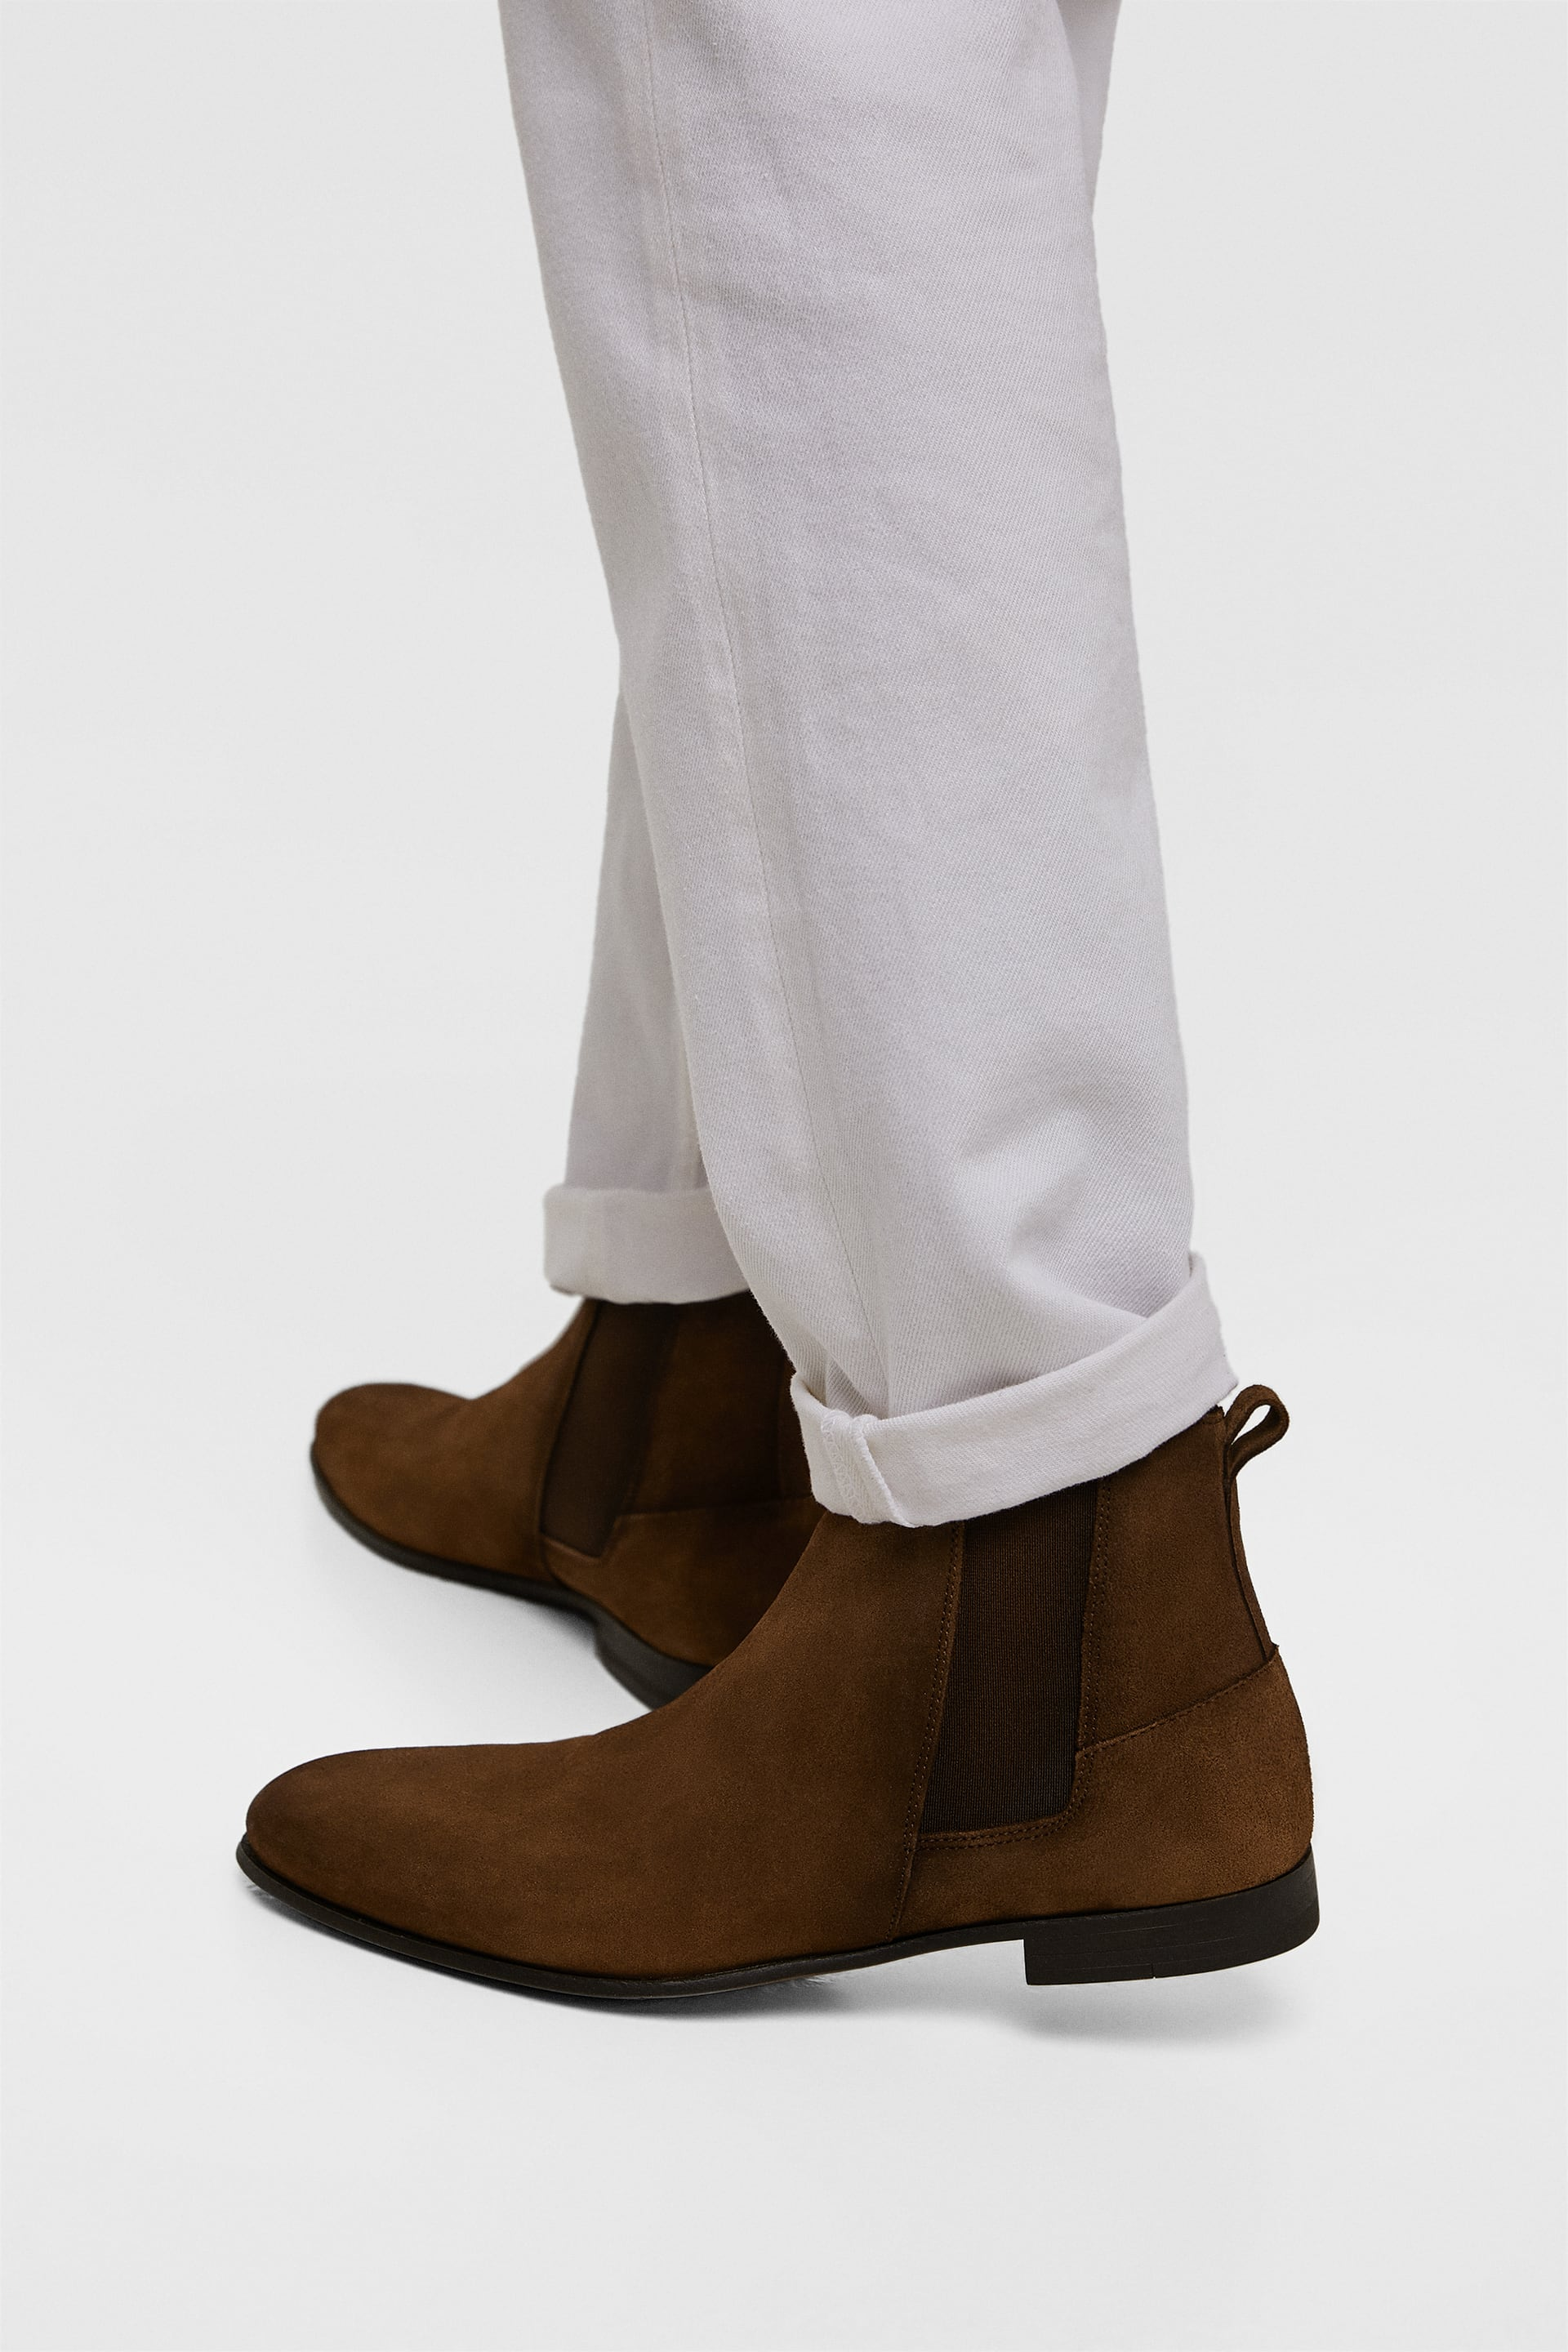 Brown Leather Ankle Boots Boots And Chelsea Boots Shoes Man by Zara